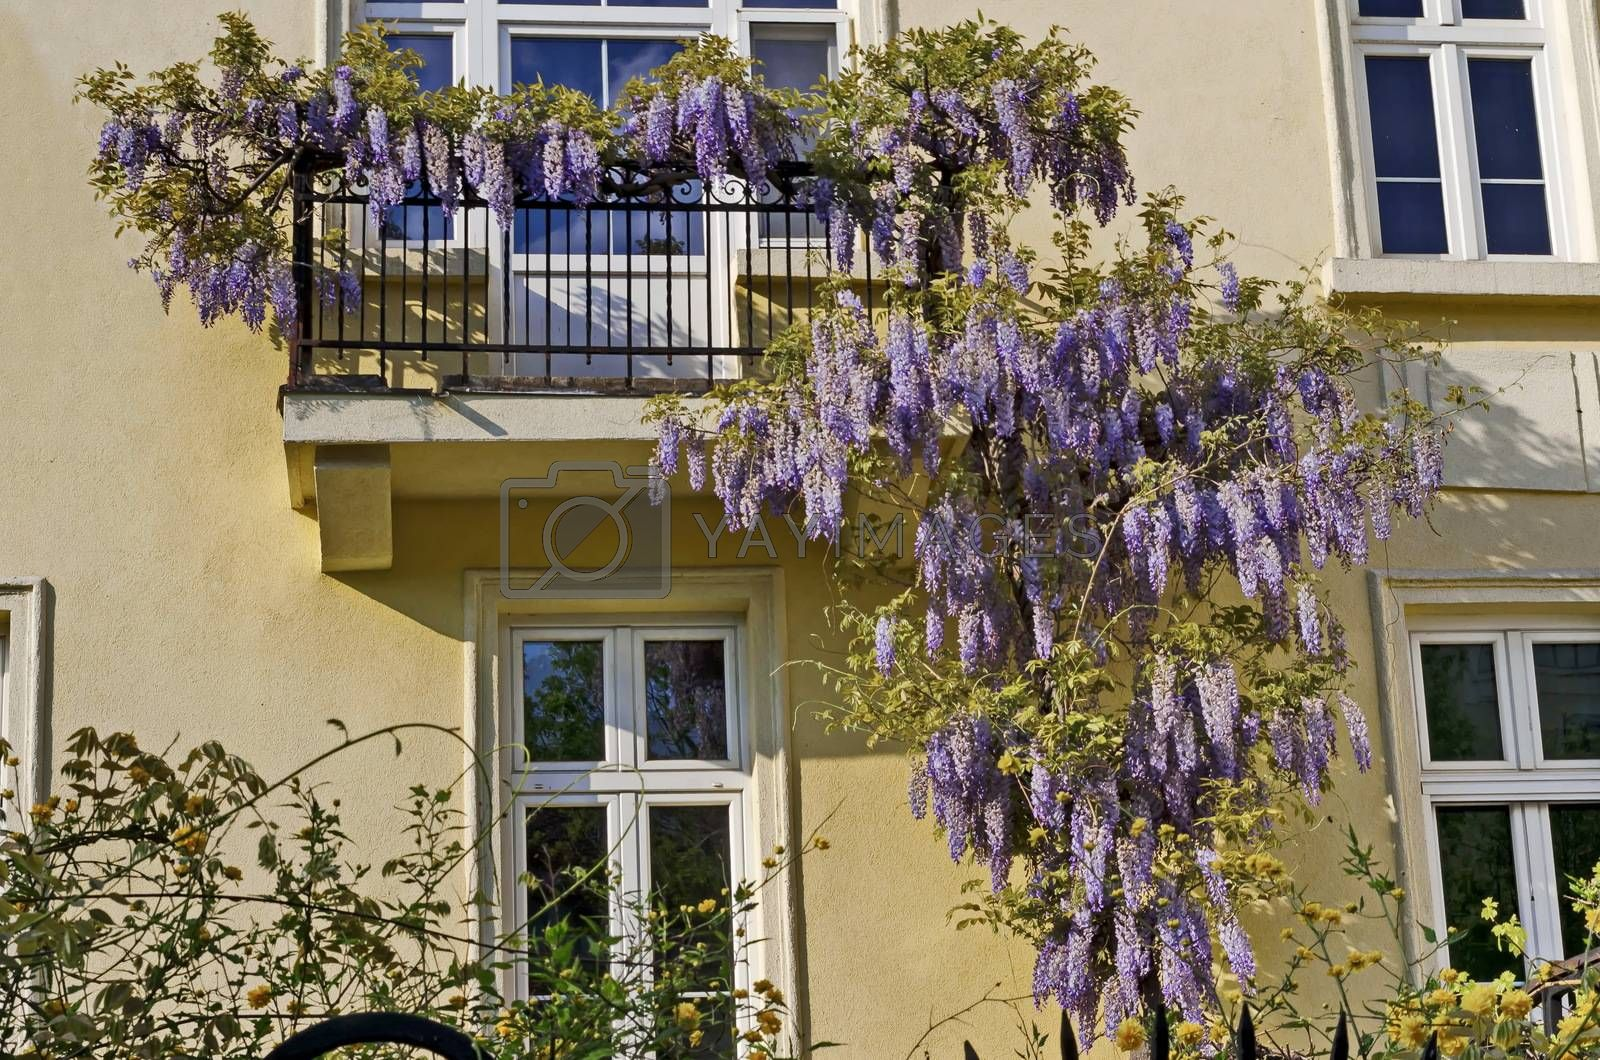 Full flowered purple wisteria with blossom and leaves on a railing at balcony, Sofia, Bulgaria